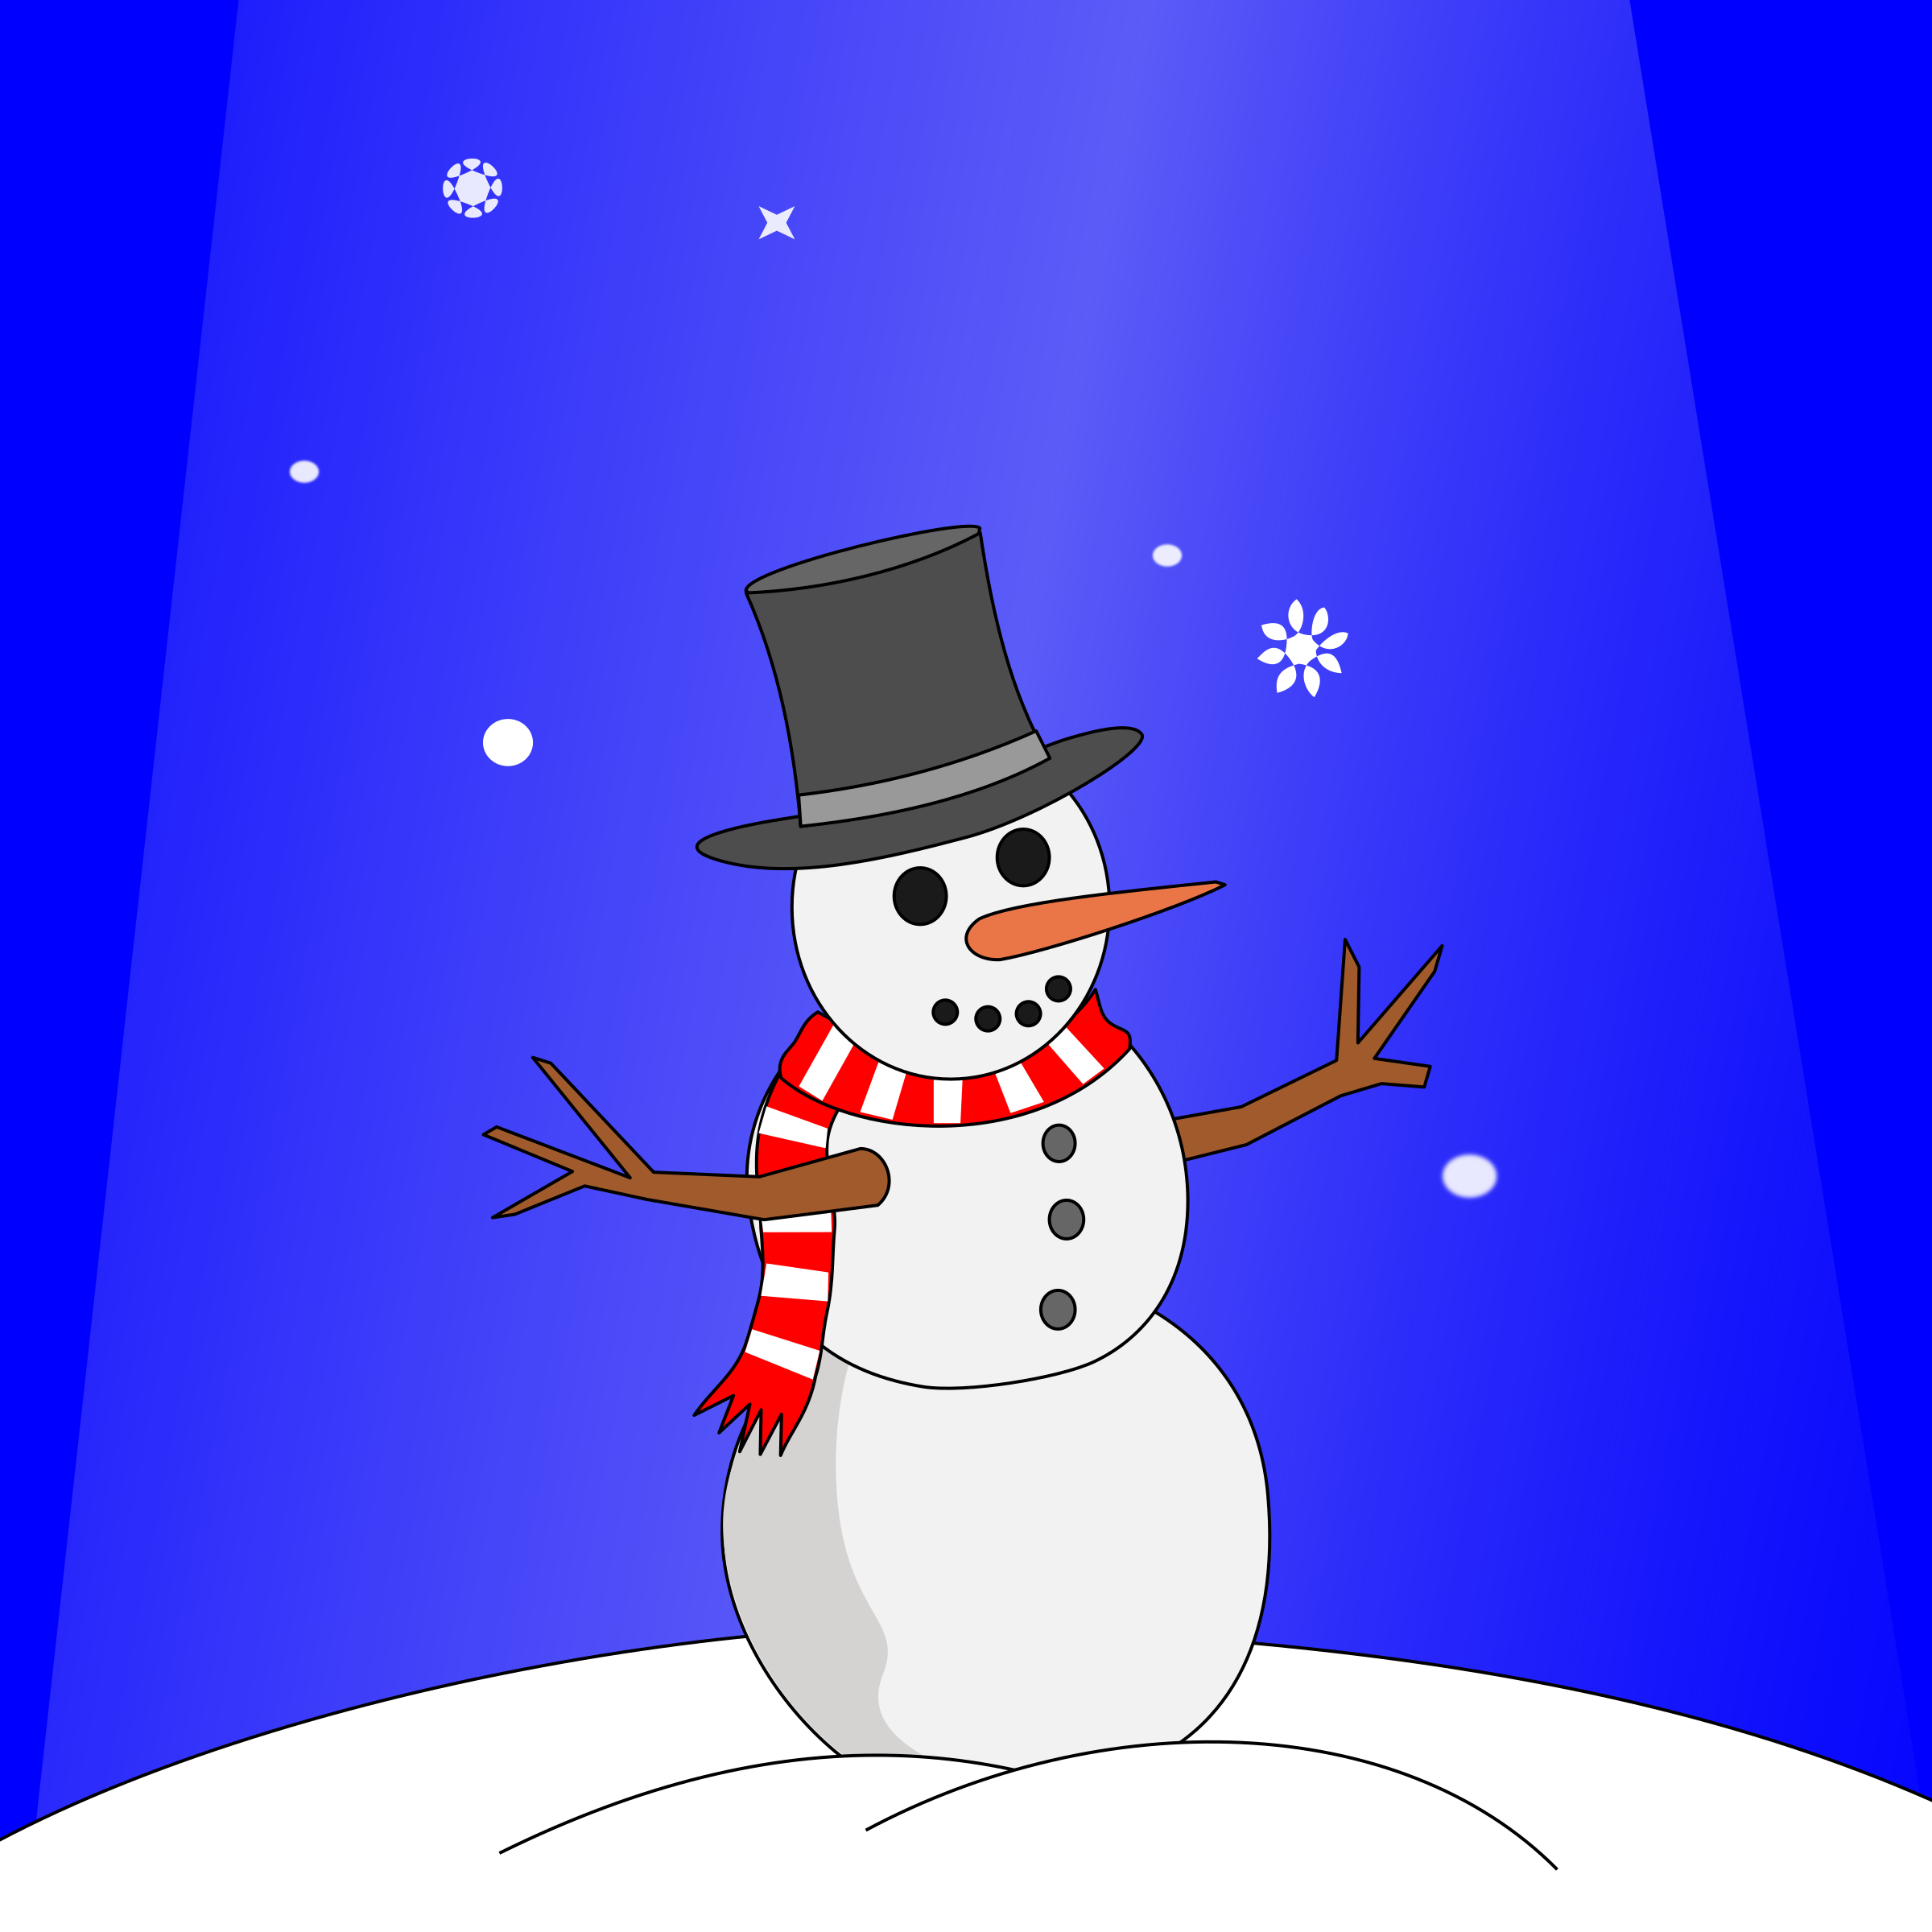 Animation: Snowman by aukipa